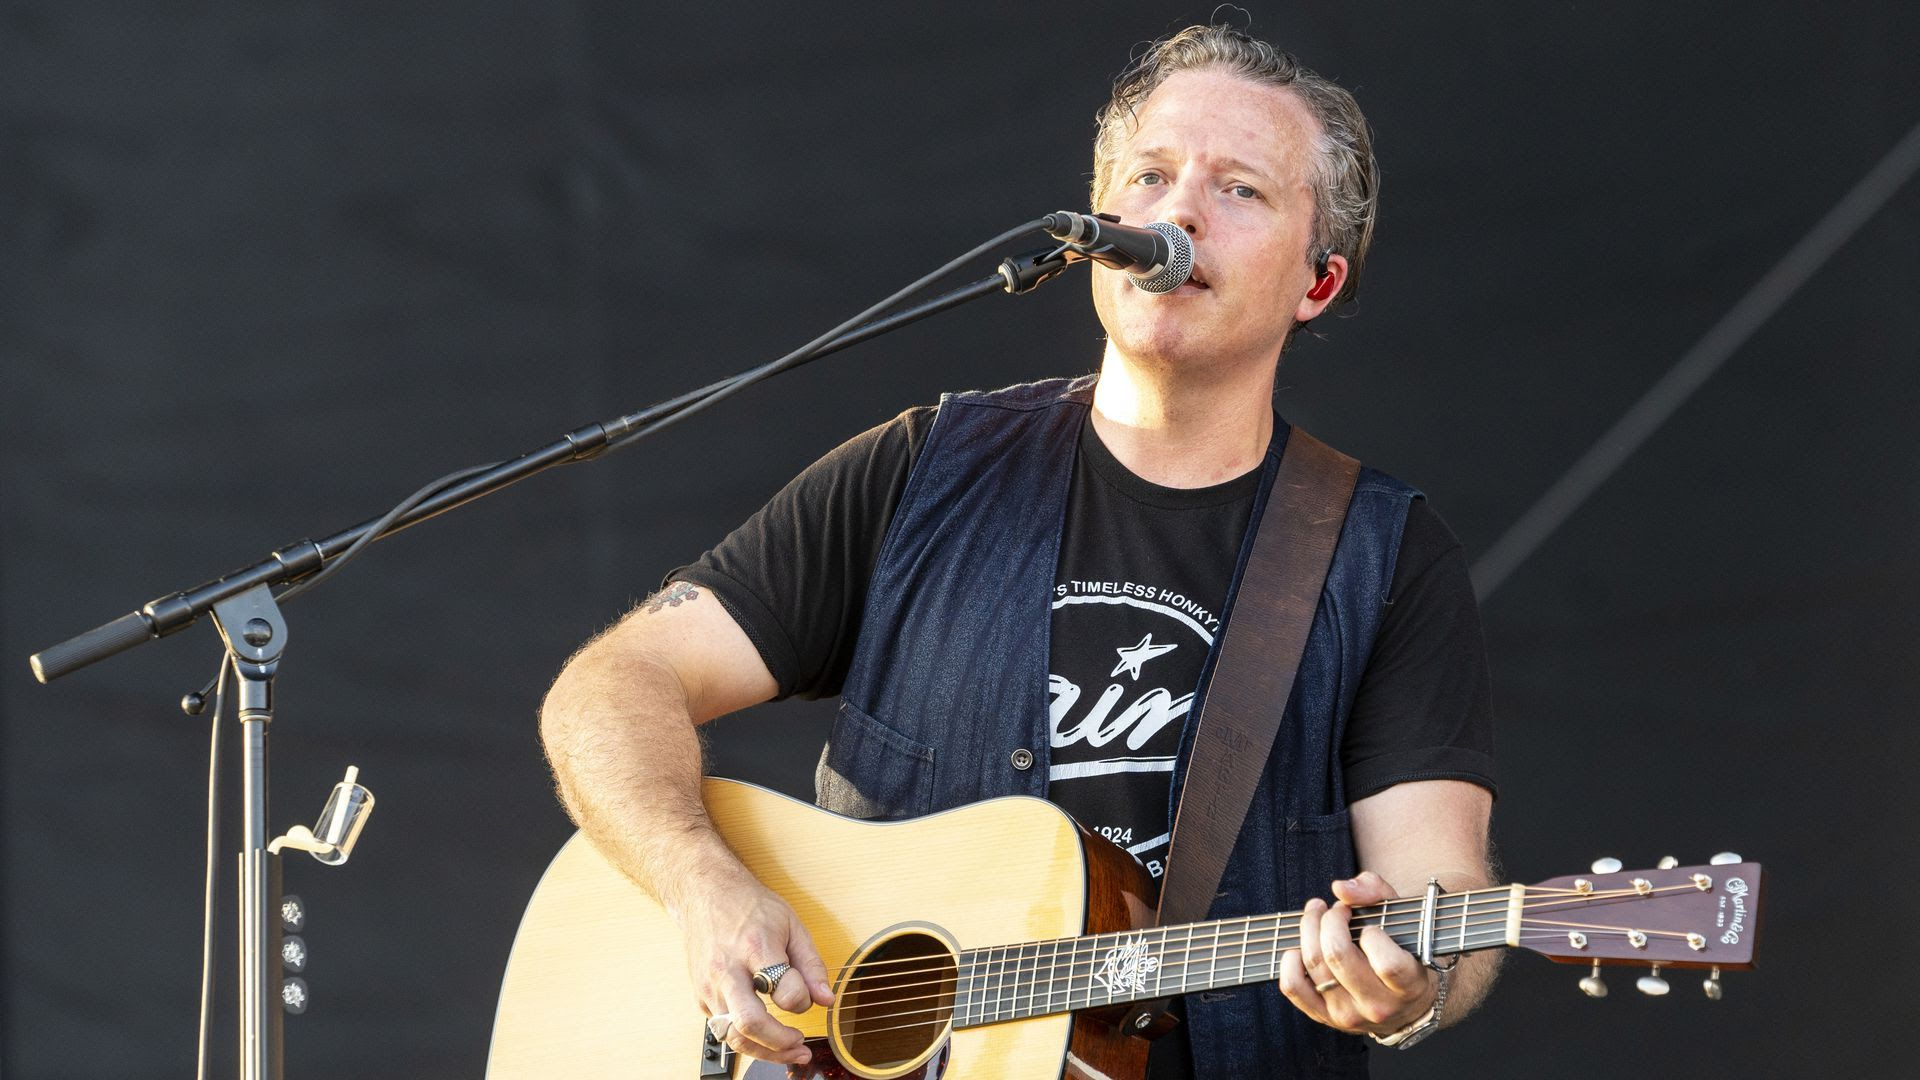 Jason Isbell singing and playing guitar at an event in August.